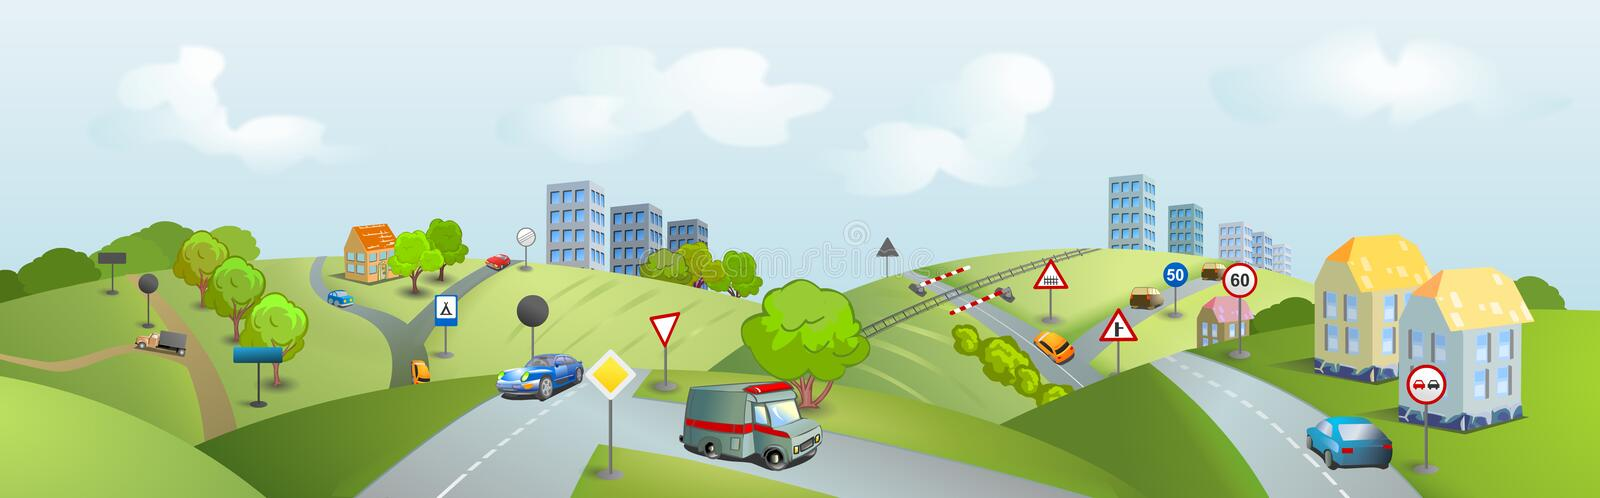 Area with cars and traffic signs royalty free stock photos